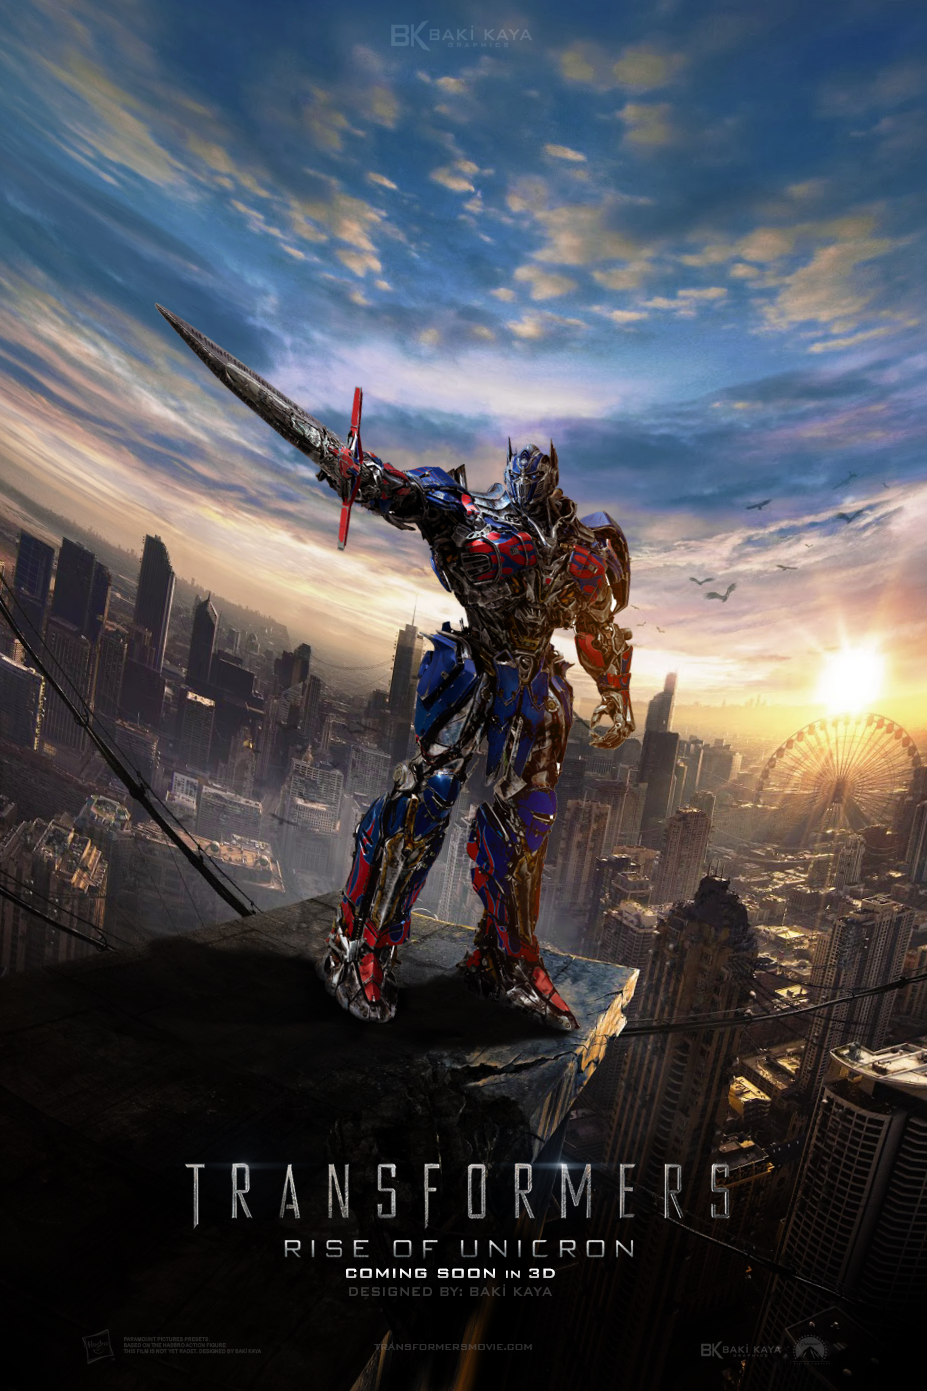 transformers 5 rise of unicron 2016 poster 2 by krallbaki on deviantart. Black Bedroom Furniture Sets. Home Design Ideas